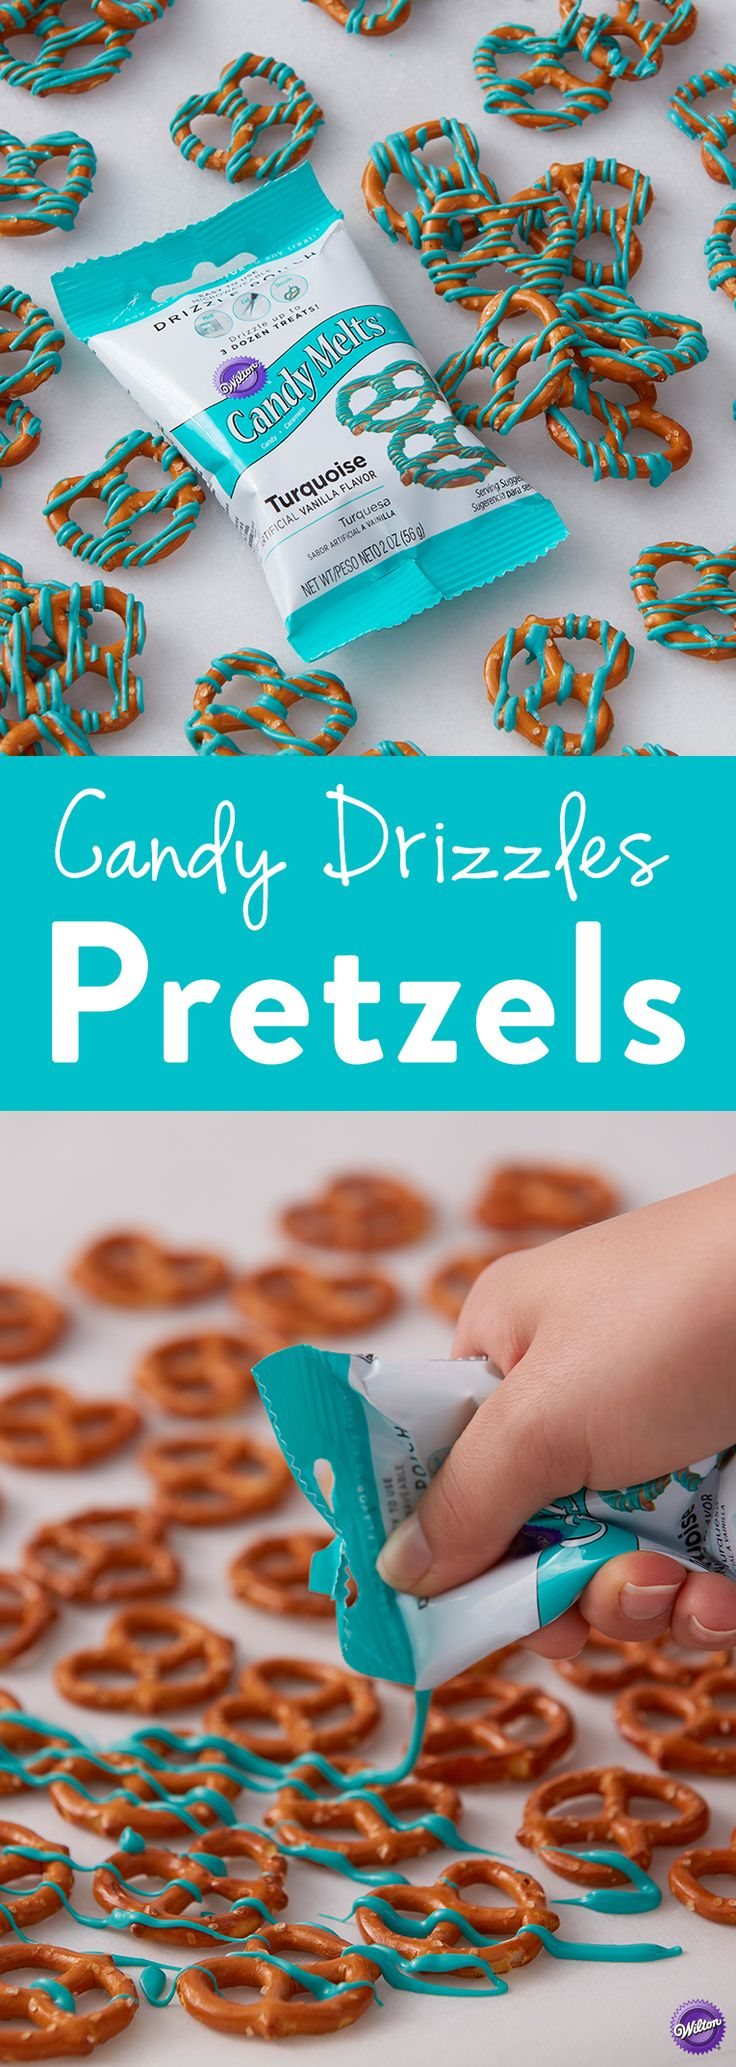 Great Baby Shower Brunch Idea. See More. Candy Drizzles Pretzels   This  Quick Handmade Treat Is Easy And Fun To Do To With